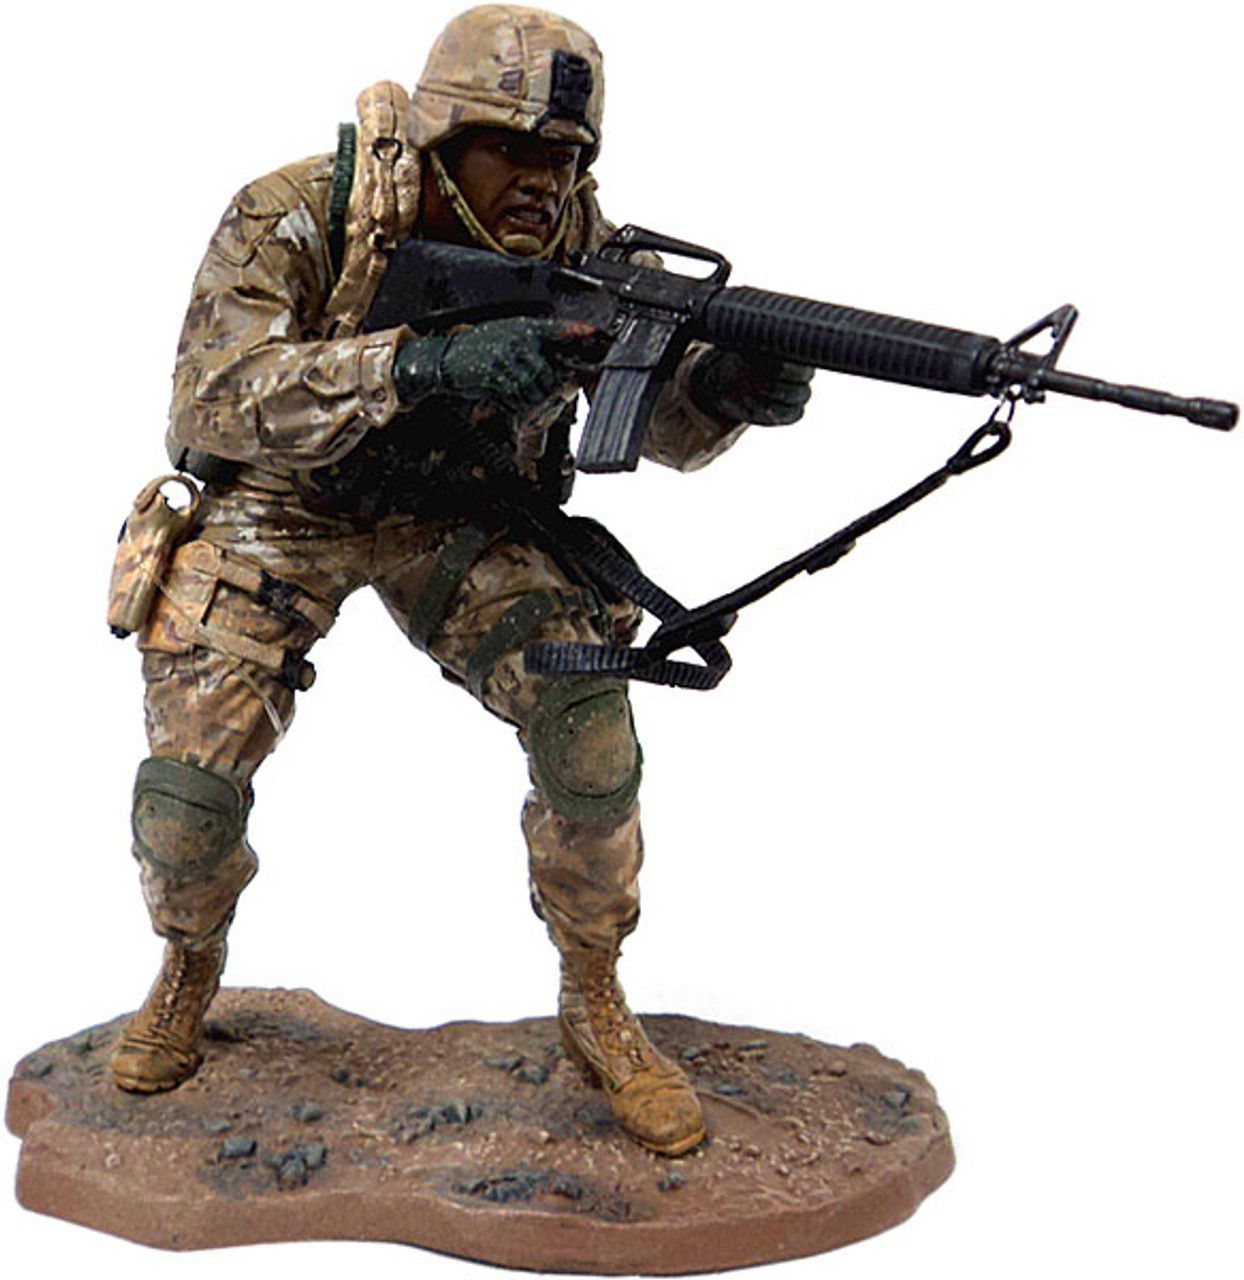 McFarlane Toys Military Redeployed Series 1 Marine Recon Soldier Action Figure [African American, Loose]